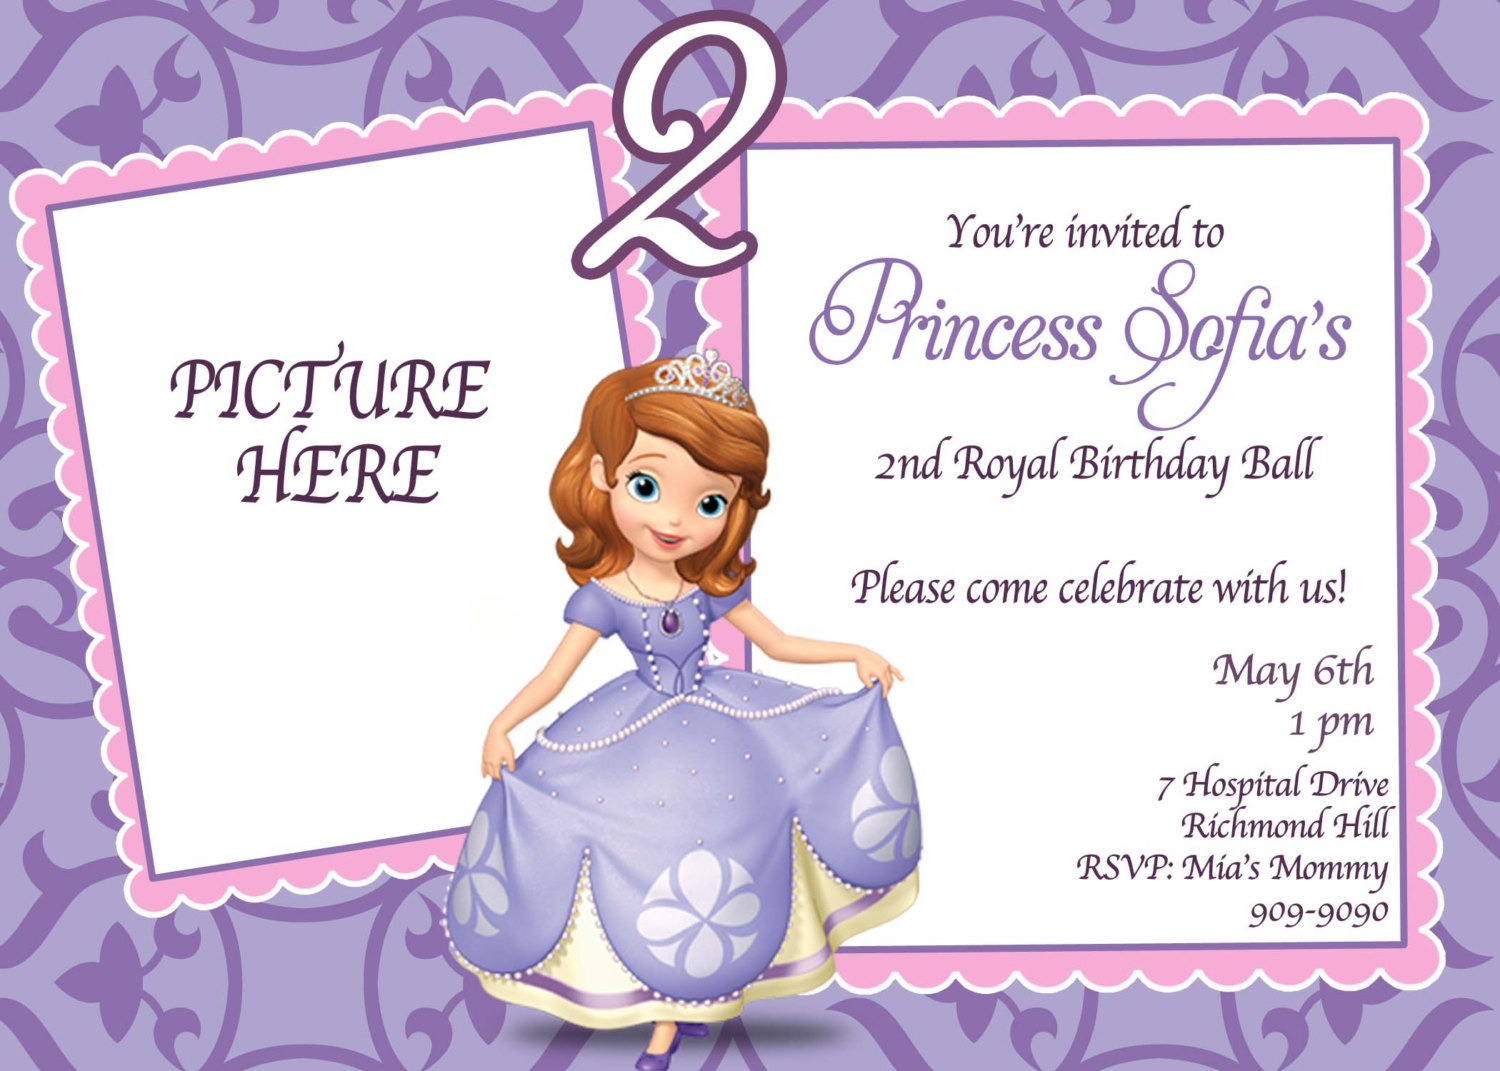 sofia the first birthday background ; Charming-Sofia-The-First-Birthday-Invitations-As-Free-Printable-Birthday-Party-Invitations